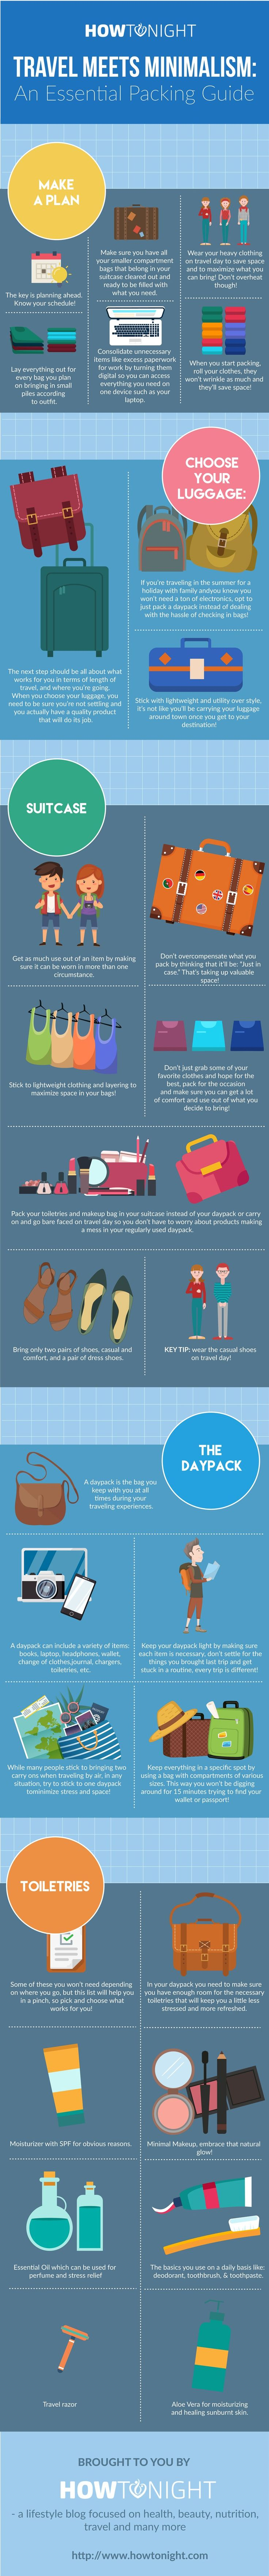 Packing for a trip can be frustrating. HowTonight has created the following infographic to show the art of packing minimally for any trip and destination you might take in the future. Traveling in minimalist style is easy, you just need to know the right tips.